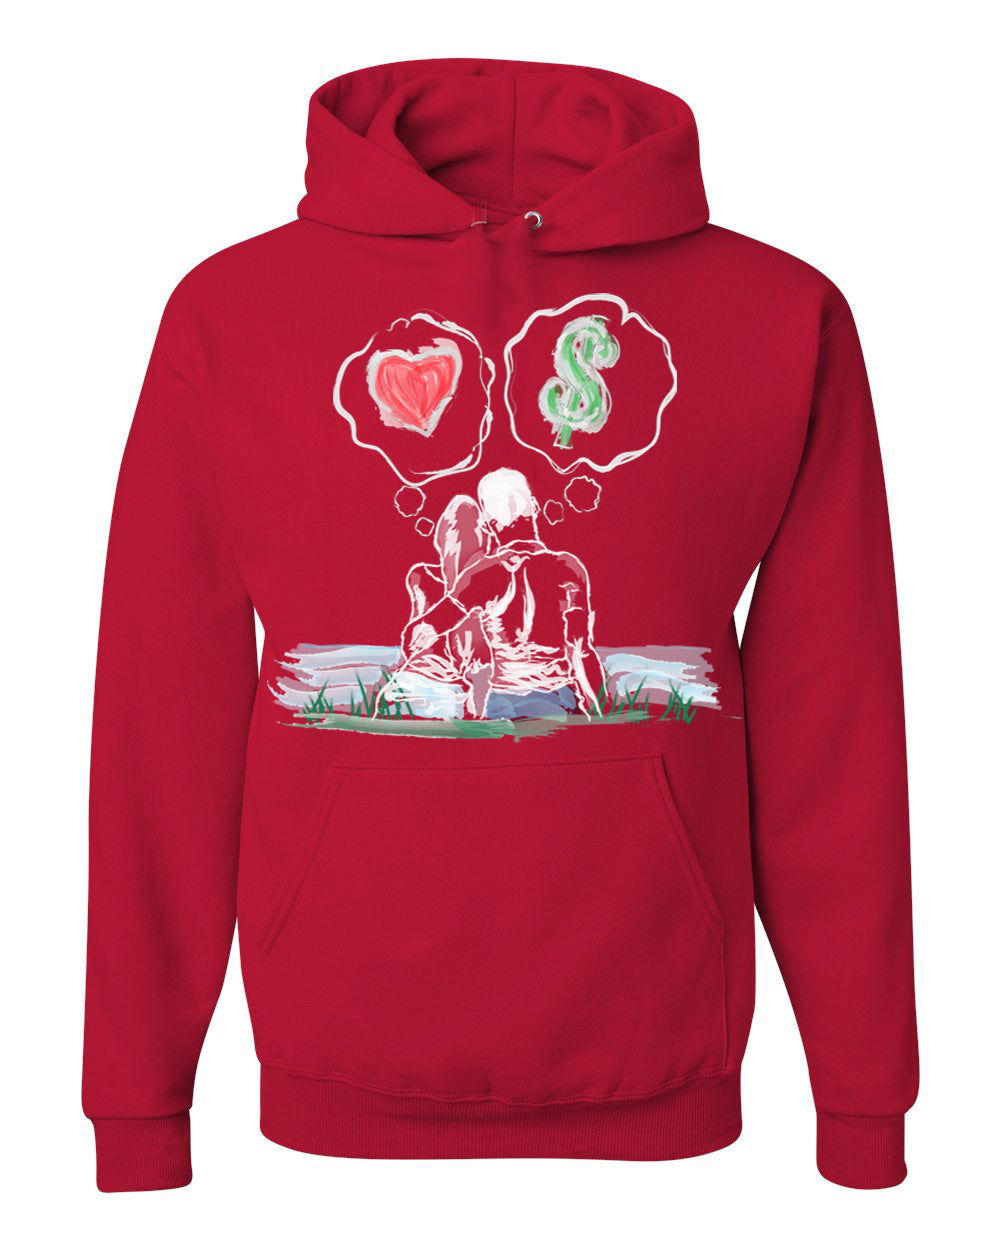 0afead03314a4d Guy Benson Collection Love Vs Money Hoodie -Red – GBC BOUTIQUE